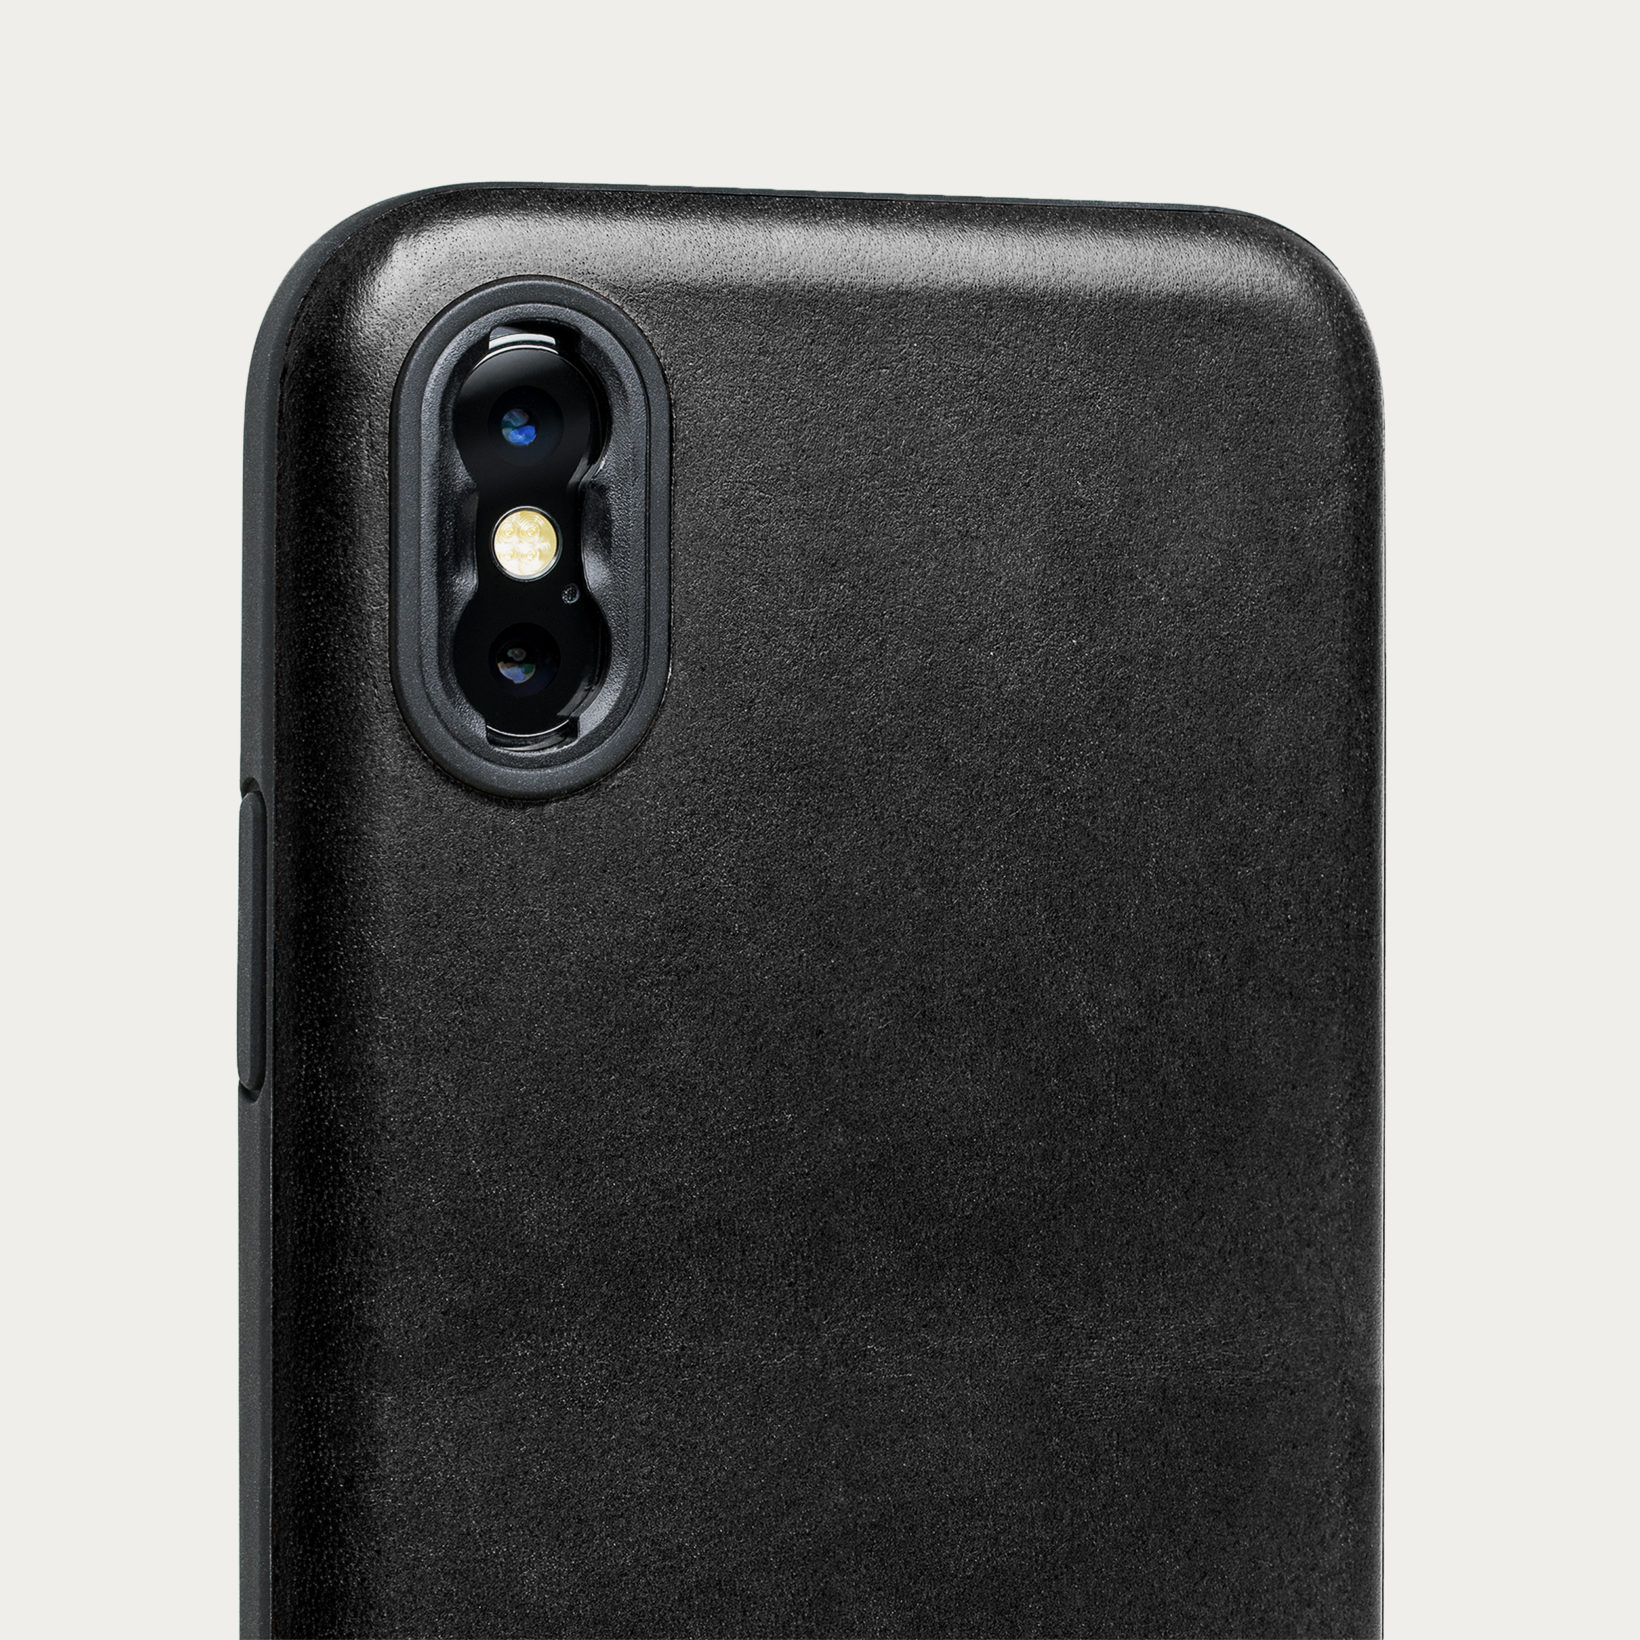 competitive price ace53 65f03 Nomad x Moment Rugged iPhone Case | iPhone X/XS - Nomad / Moment Rugged  Case Black Leather